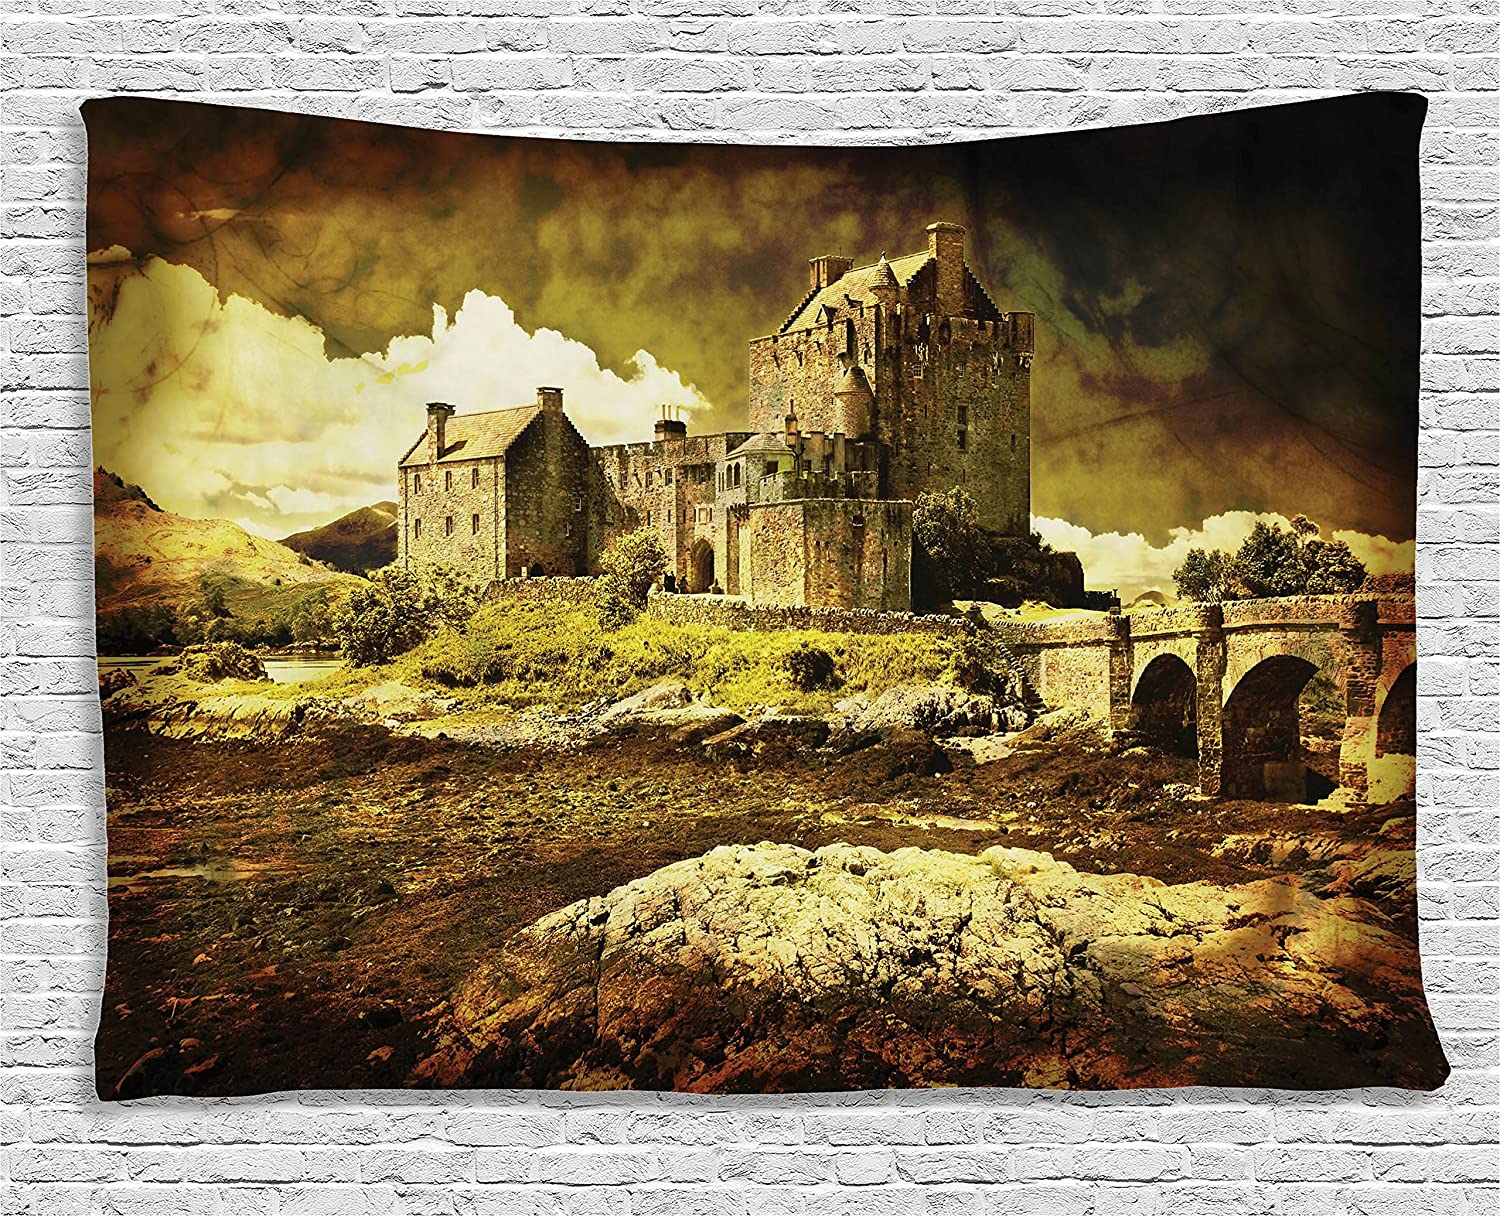 Amazon.com: Ambesonne Medieval Decor Tapestry, Old Scottish Castle ...